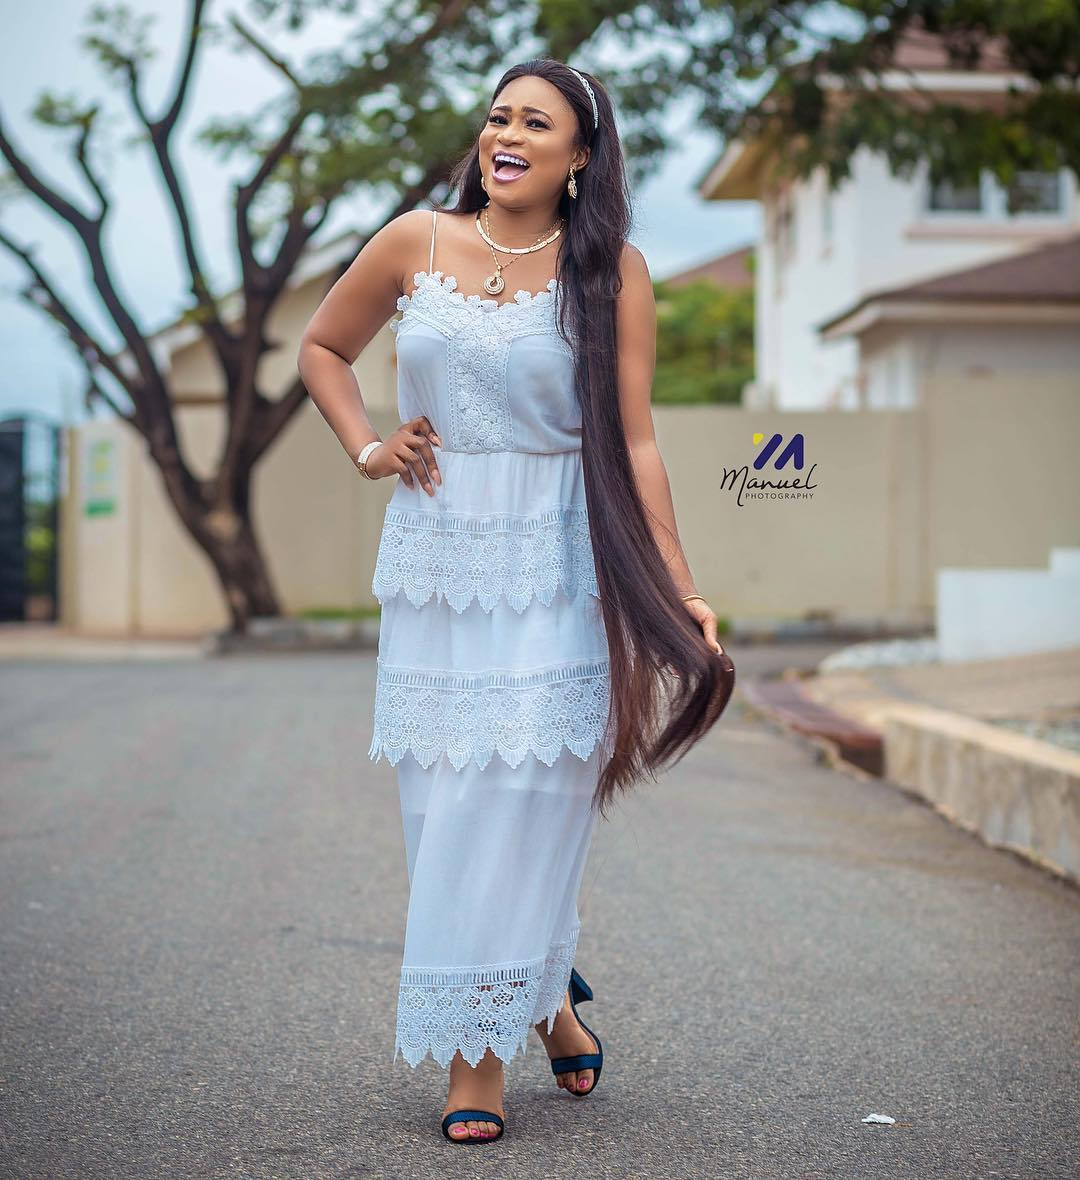 Christabel poses naked, Actress Christabel Ekeh attacked after posing naked with actor – Photos